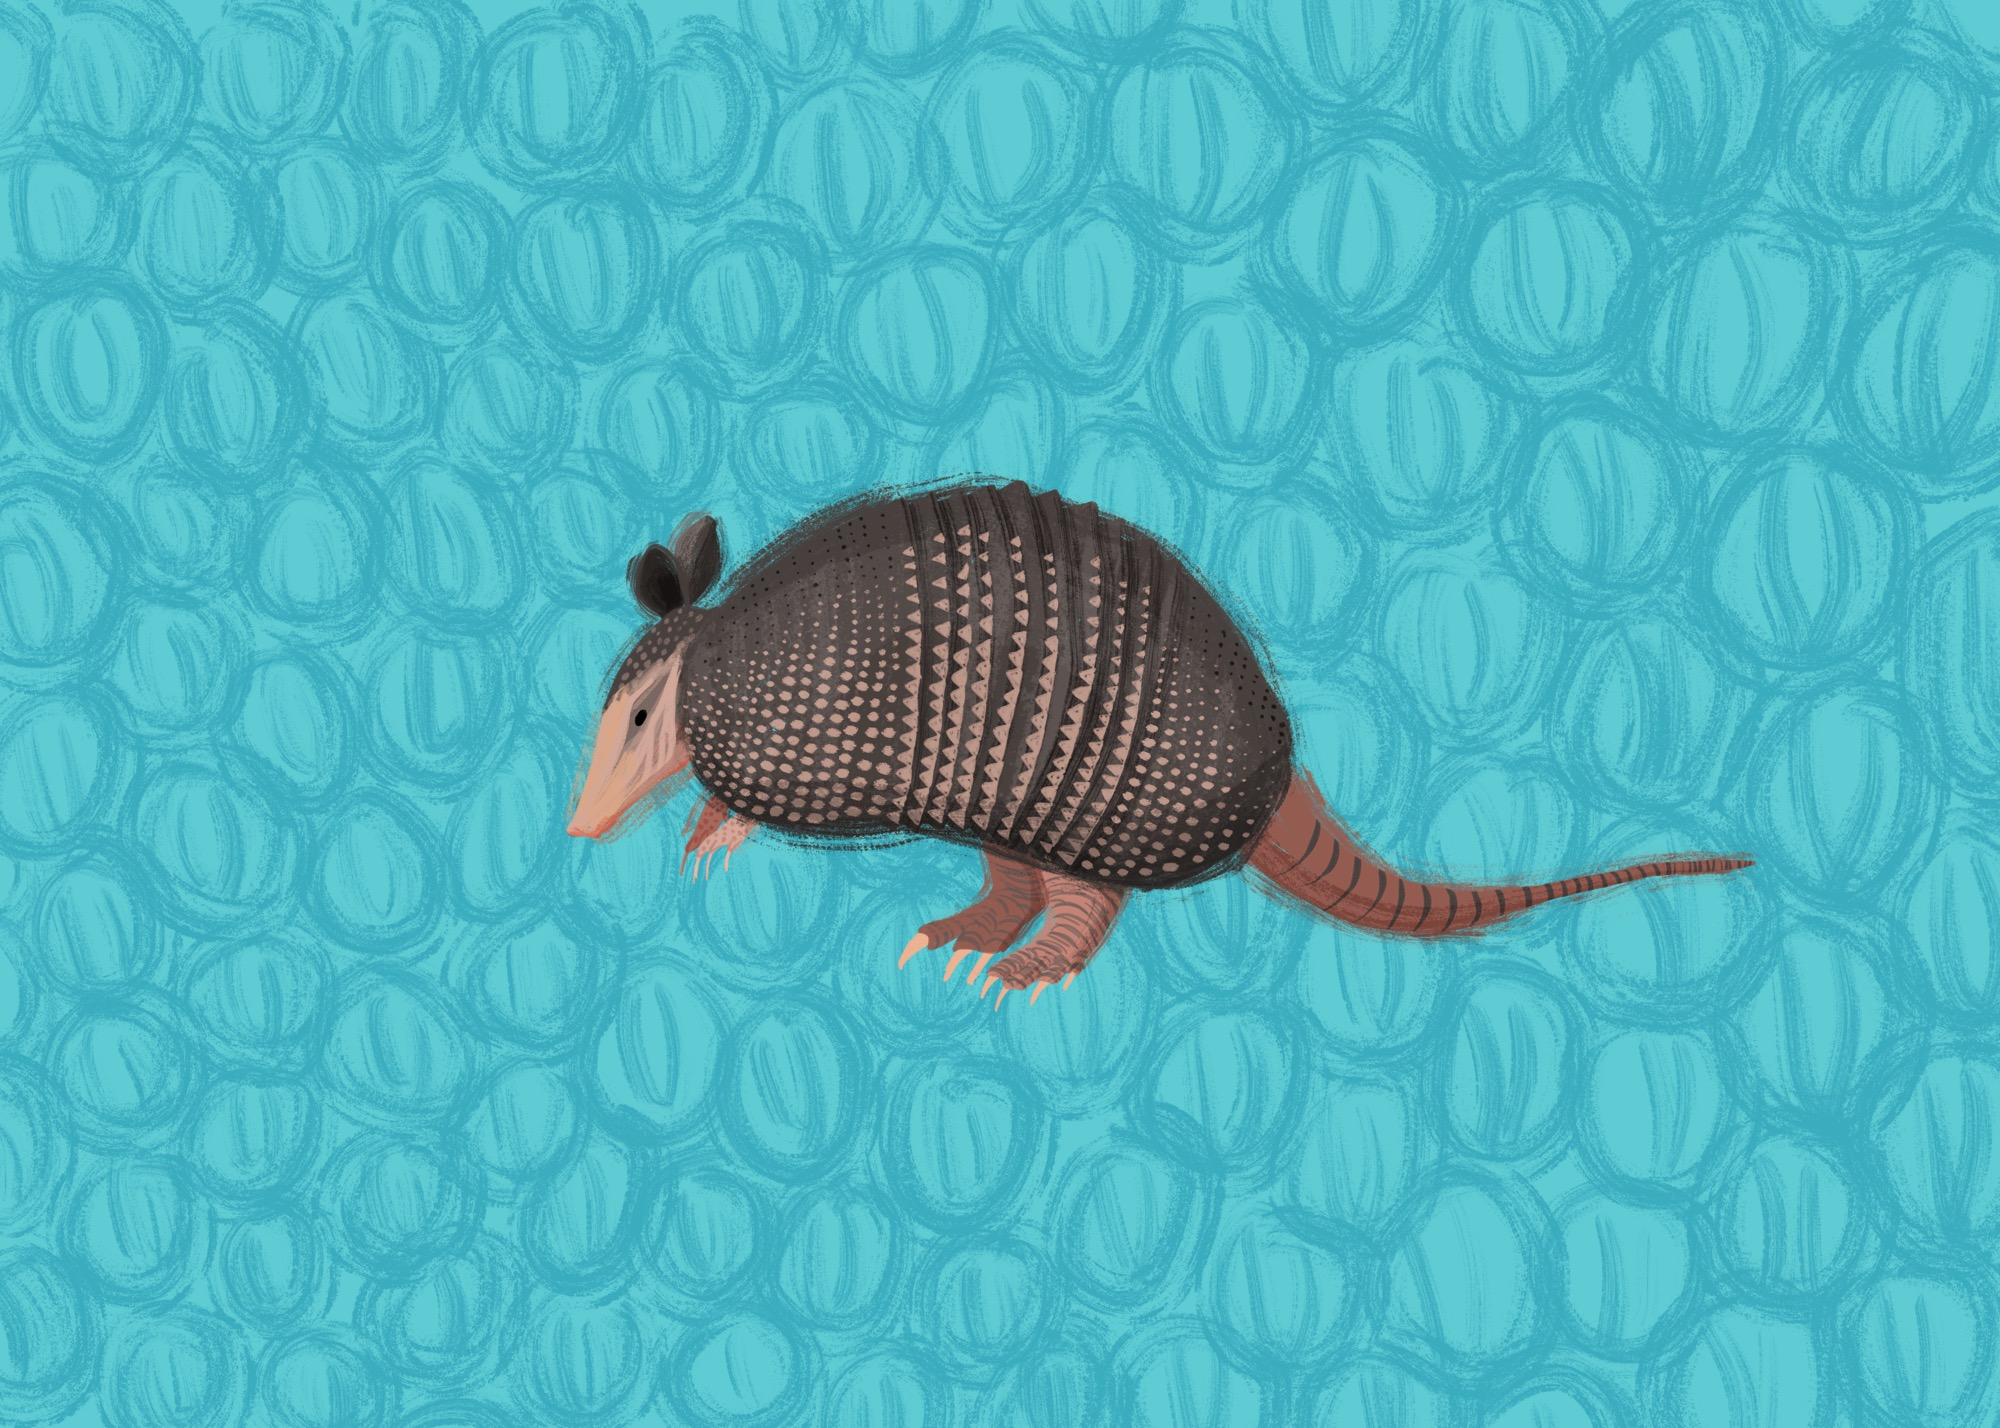 Armadillo by Lisa Bardot